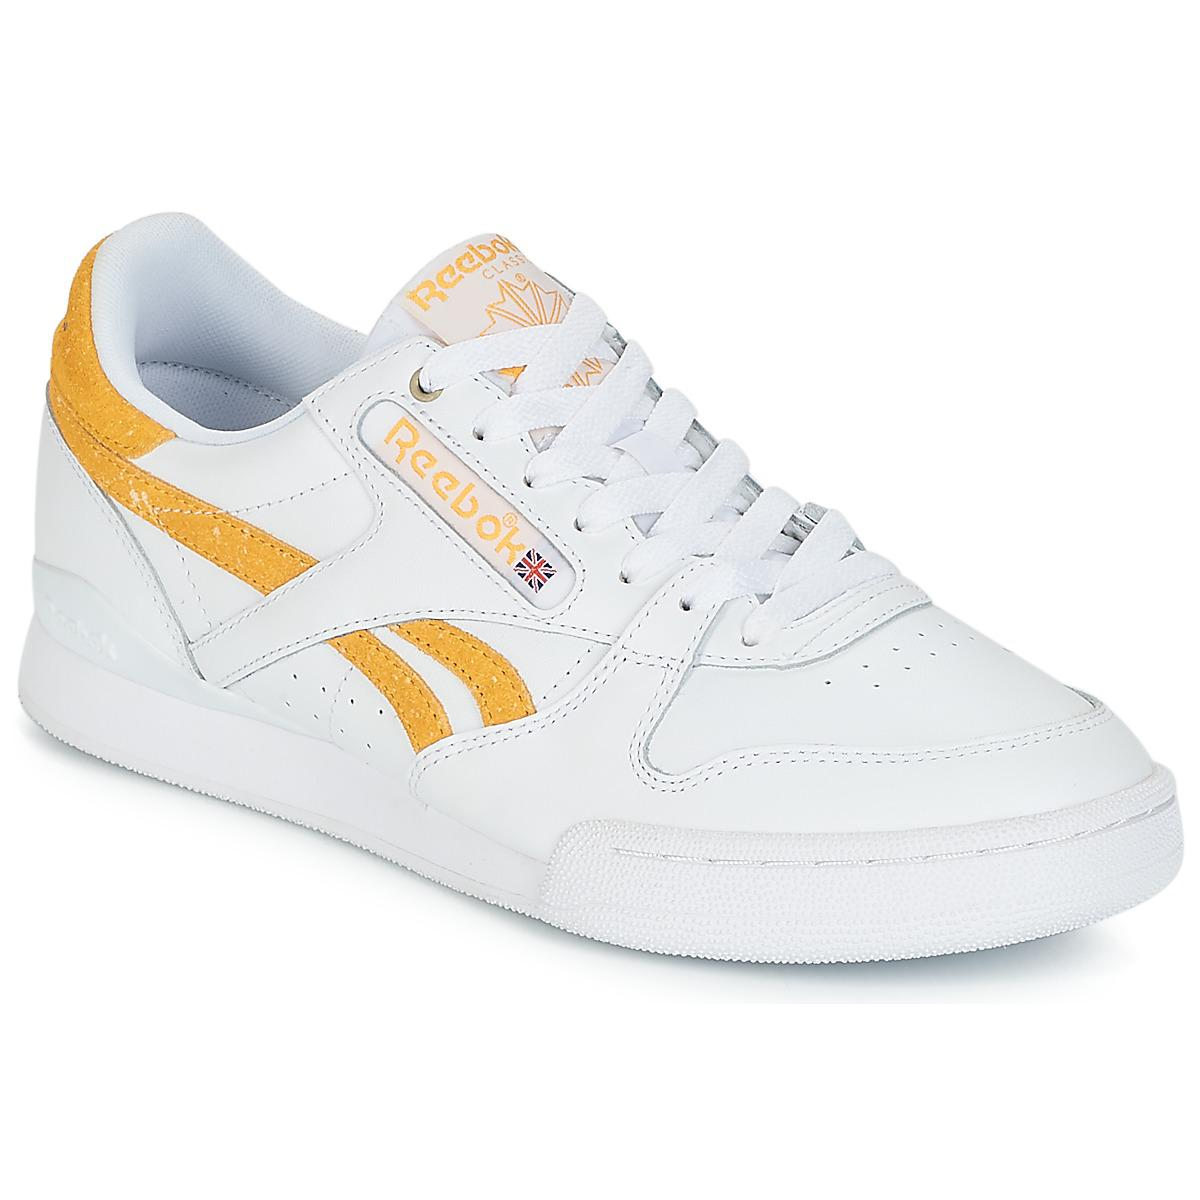 3e4ee91999fbd Reebok Phase 1 Pro Mu Men s Shoes (trainers) In White in White for ...